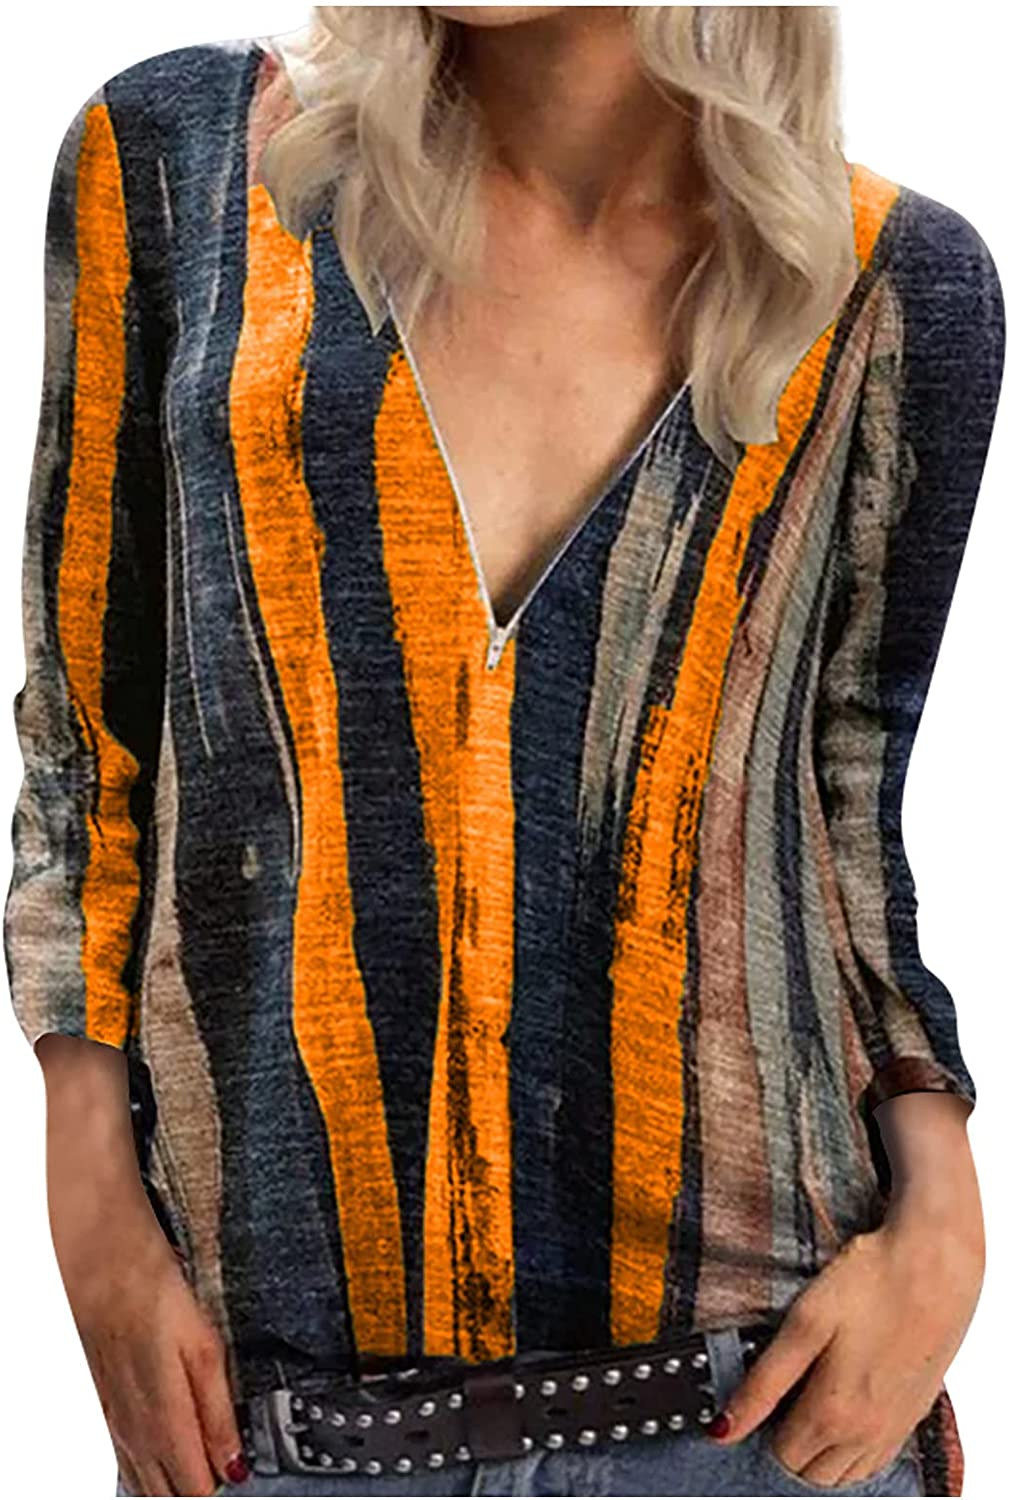 Womens Color Stripe Printing Blouses Casual V Neck Zipper T Shirt Tops Loose Plus Size Long Sleeves Blouse T-Shirt